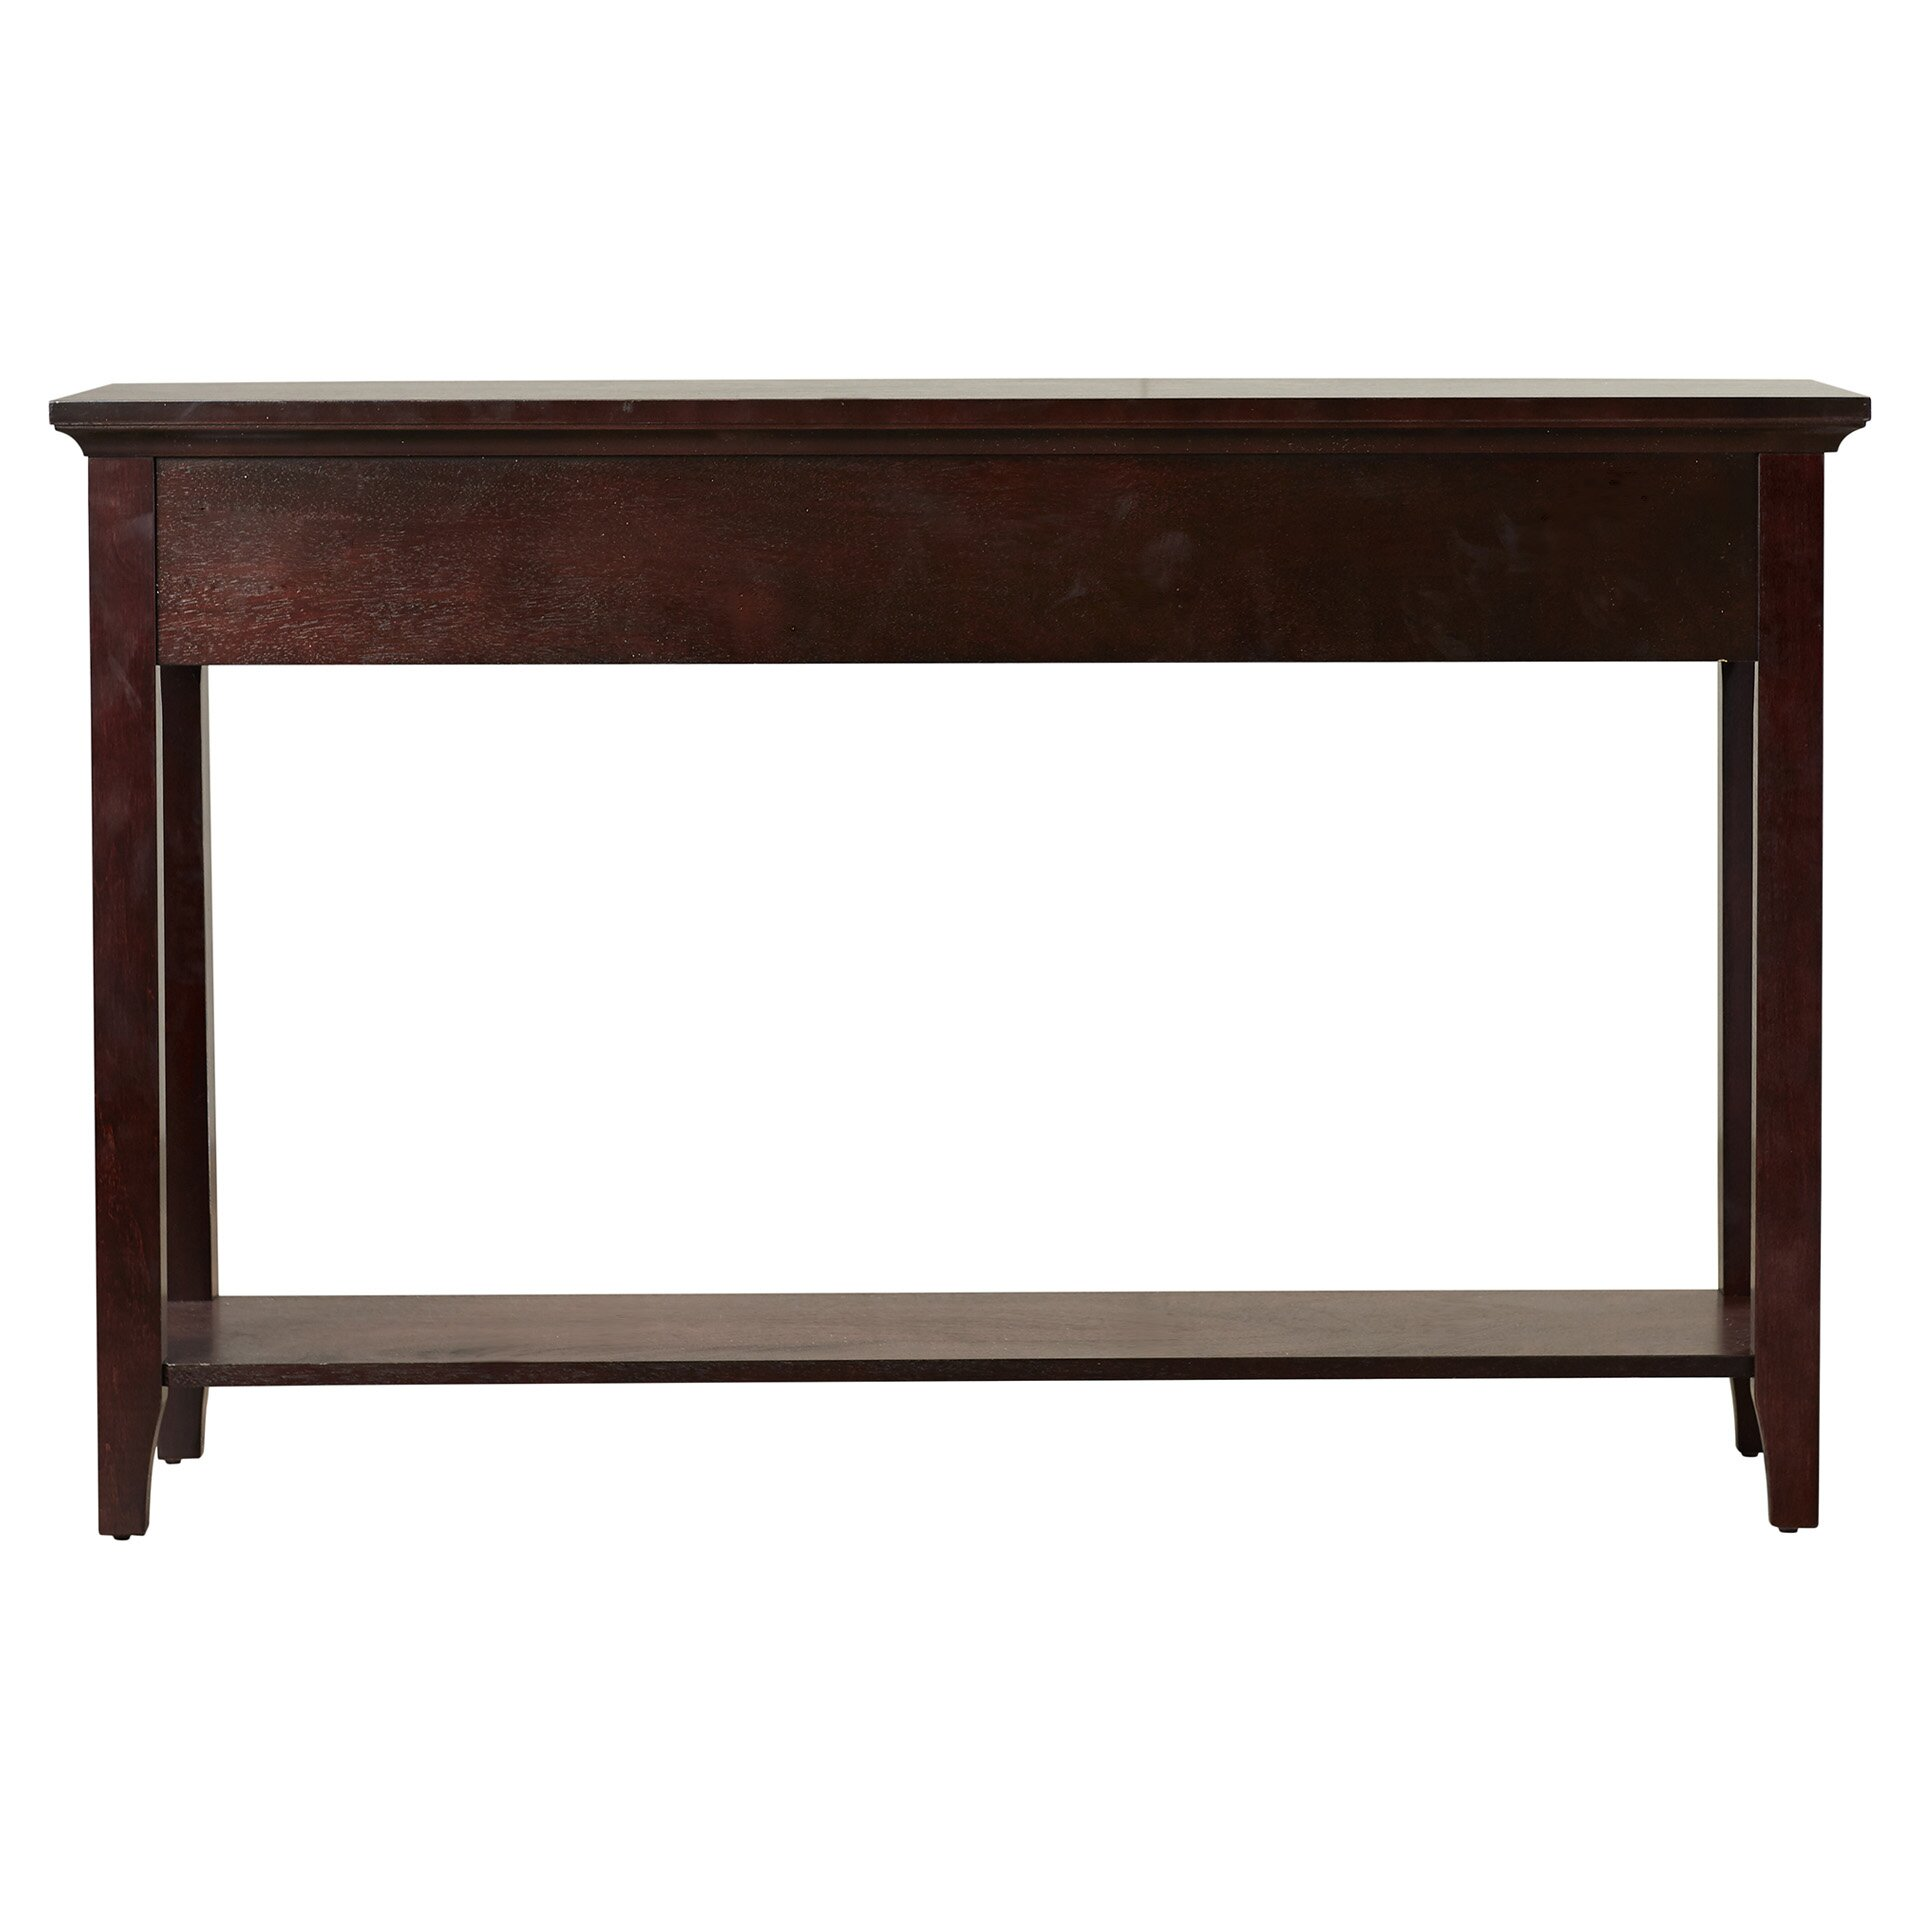 Darby Home Co Quinones Console Table & Reviews